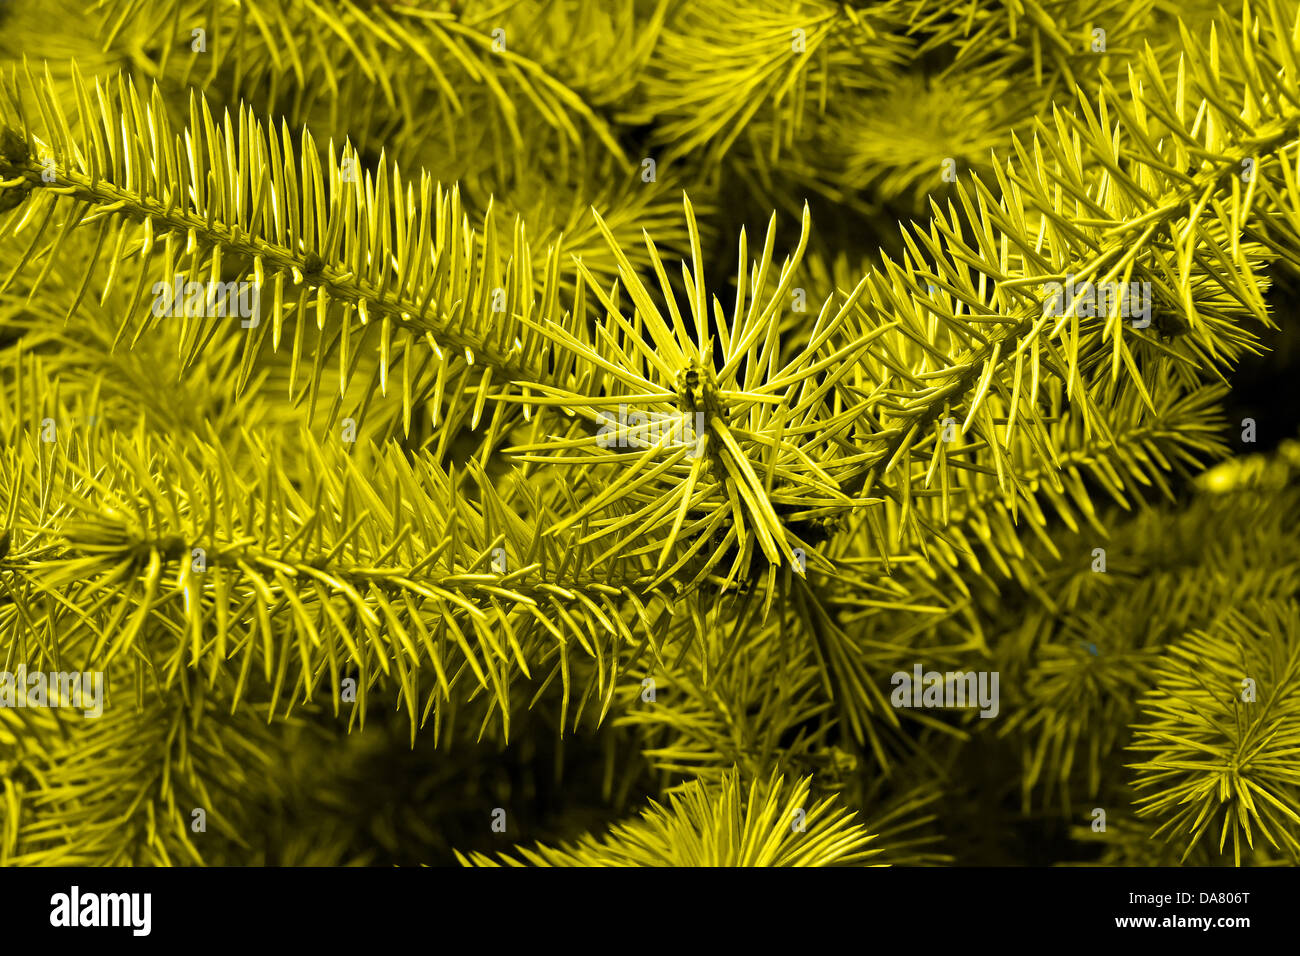 this is a closeup shot of yellow pine tree, like nice nature background - Stock Image